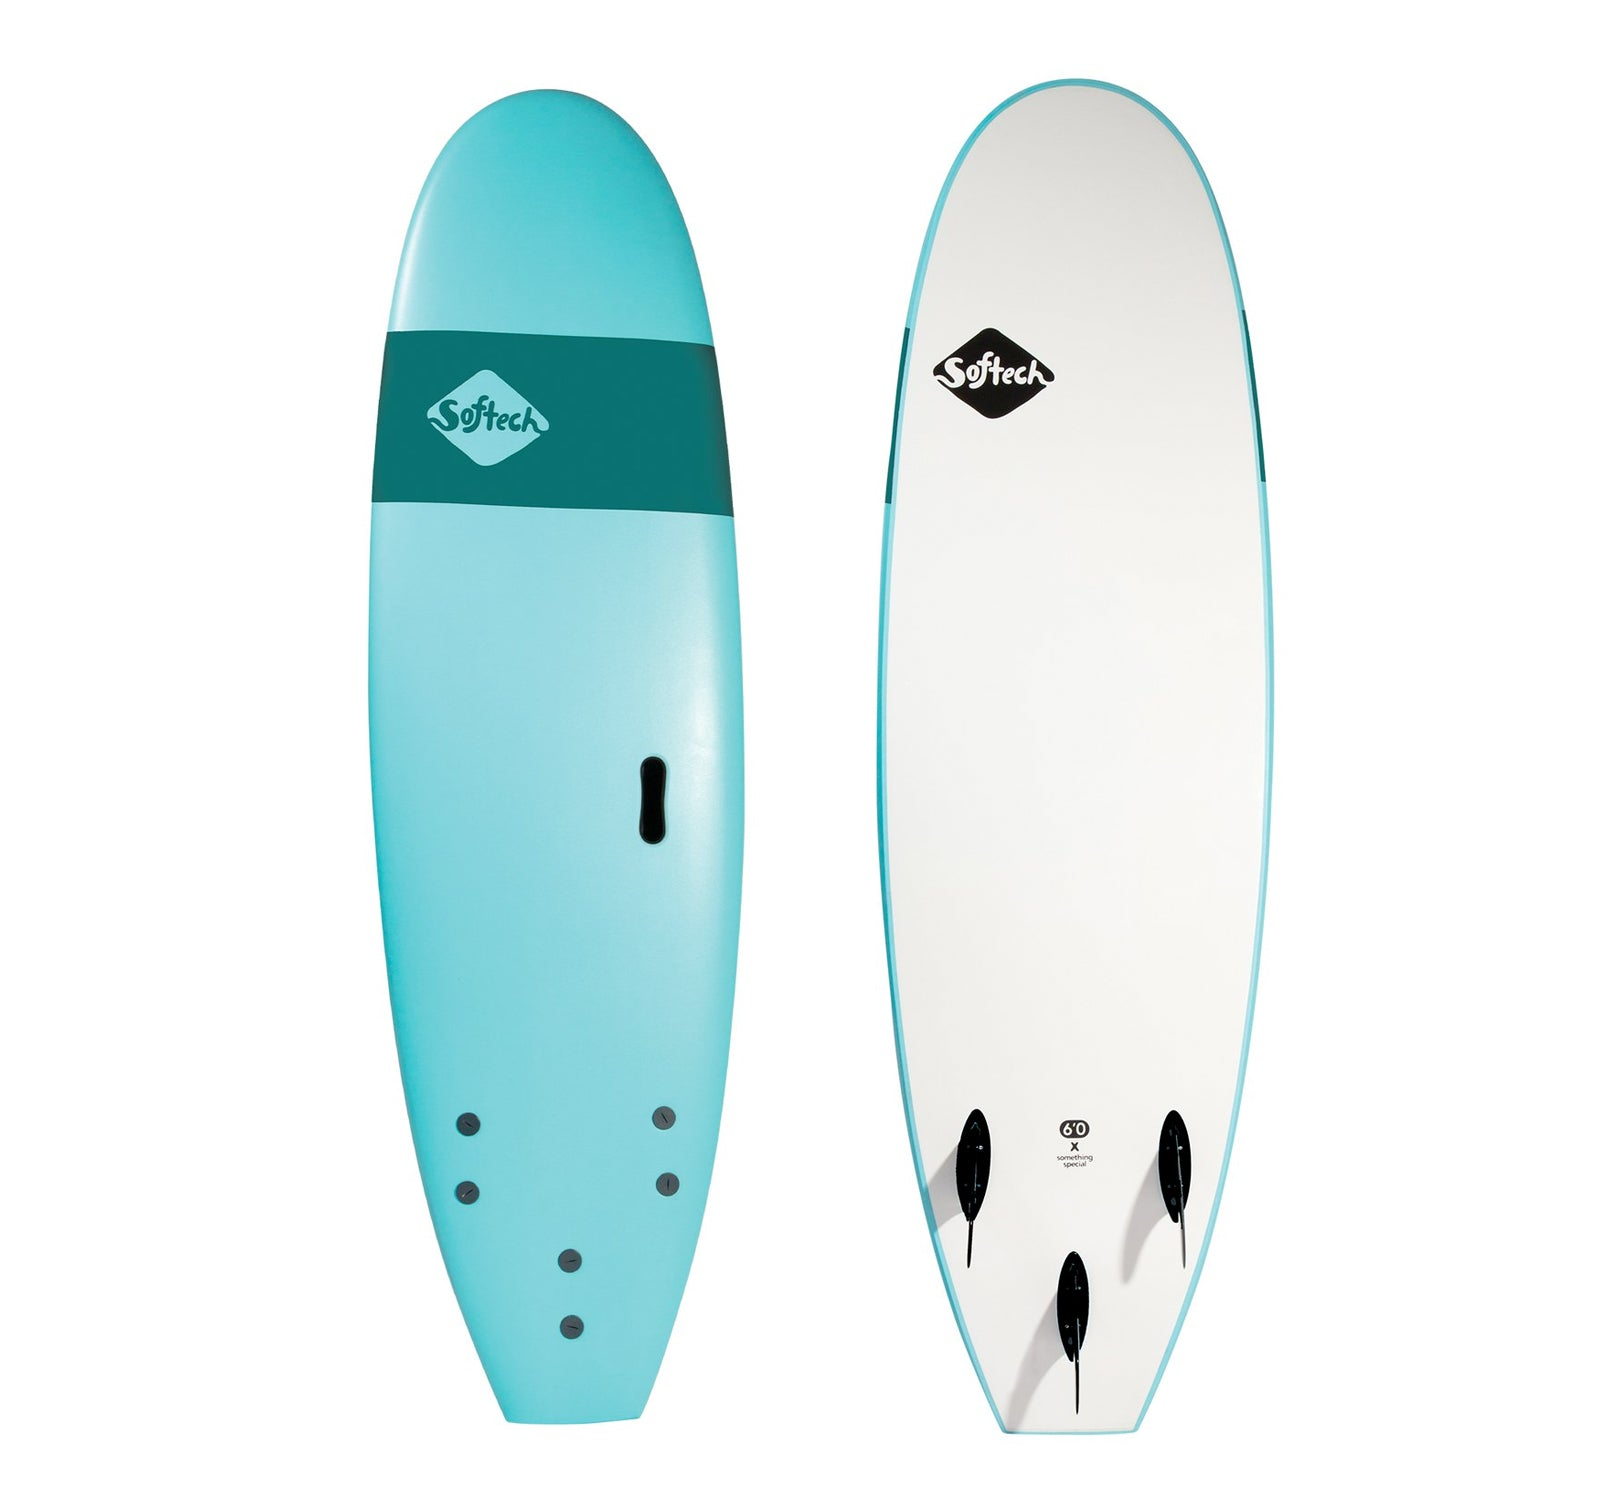 Softech Handshaped Soft Surfboard